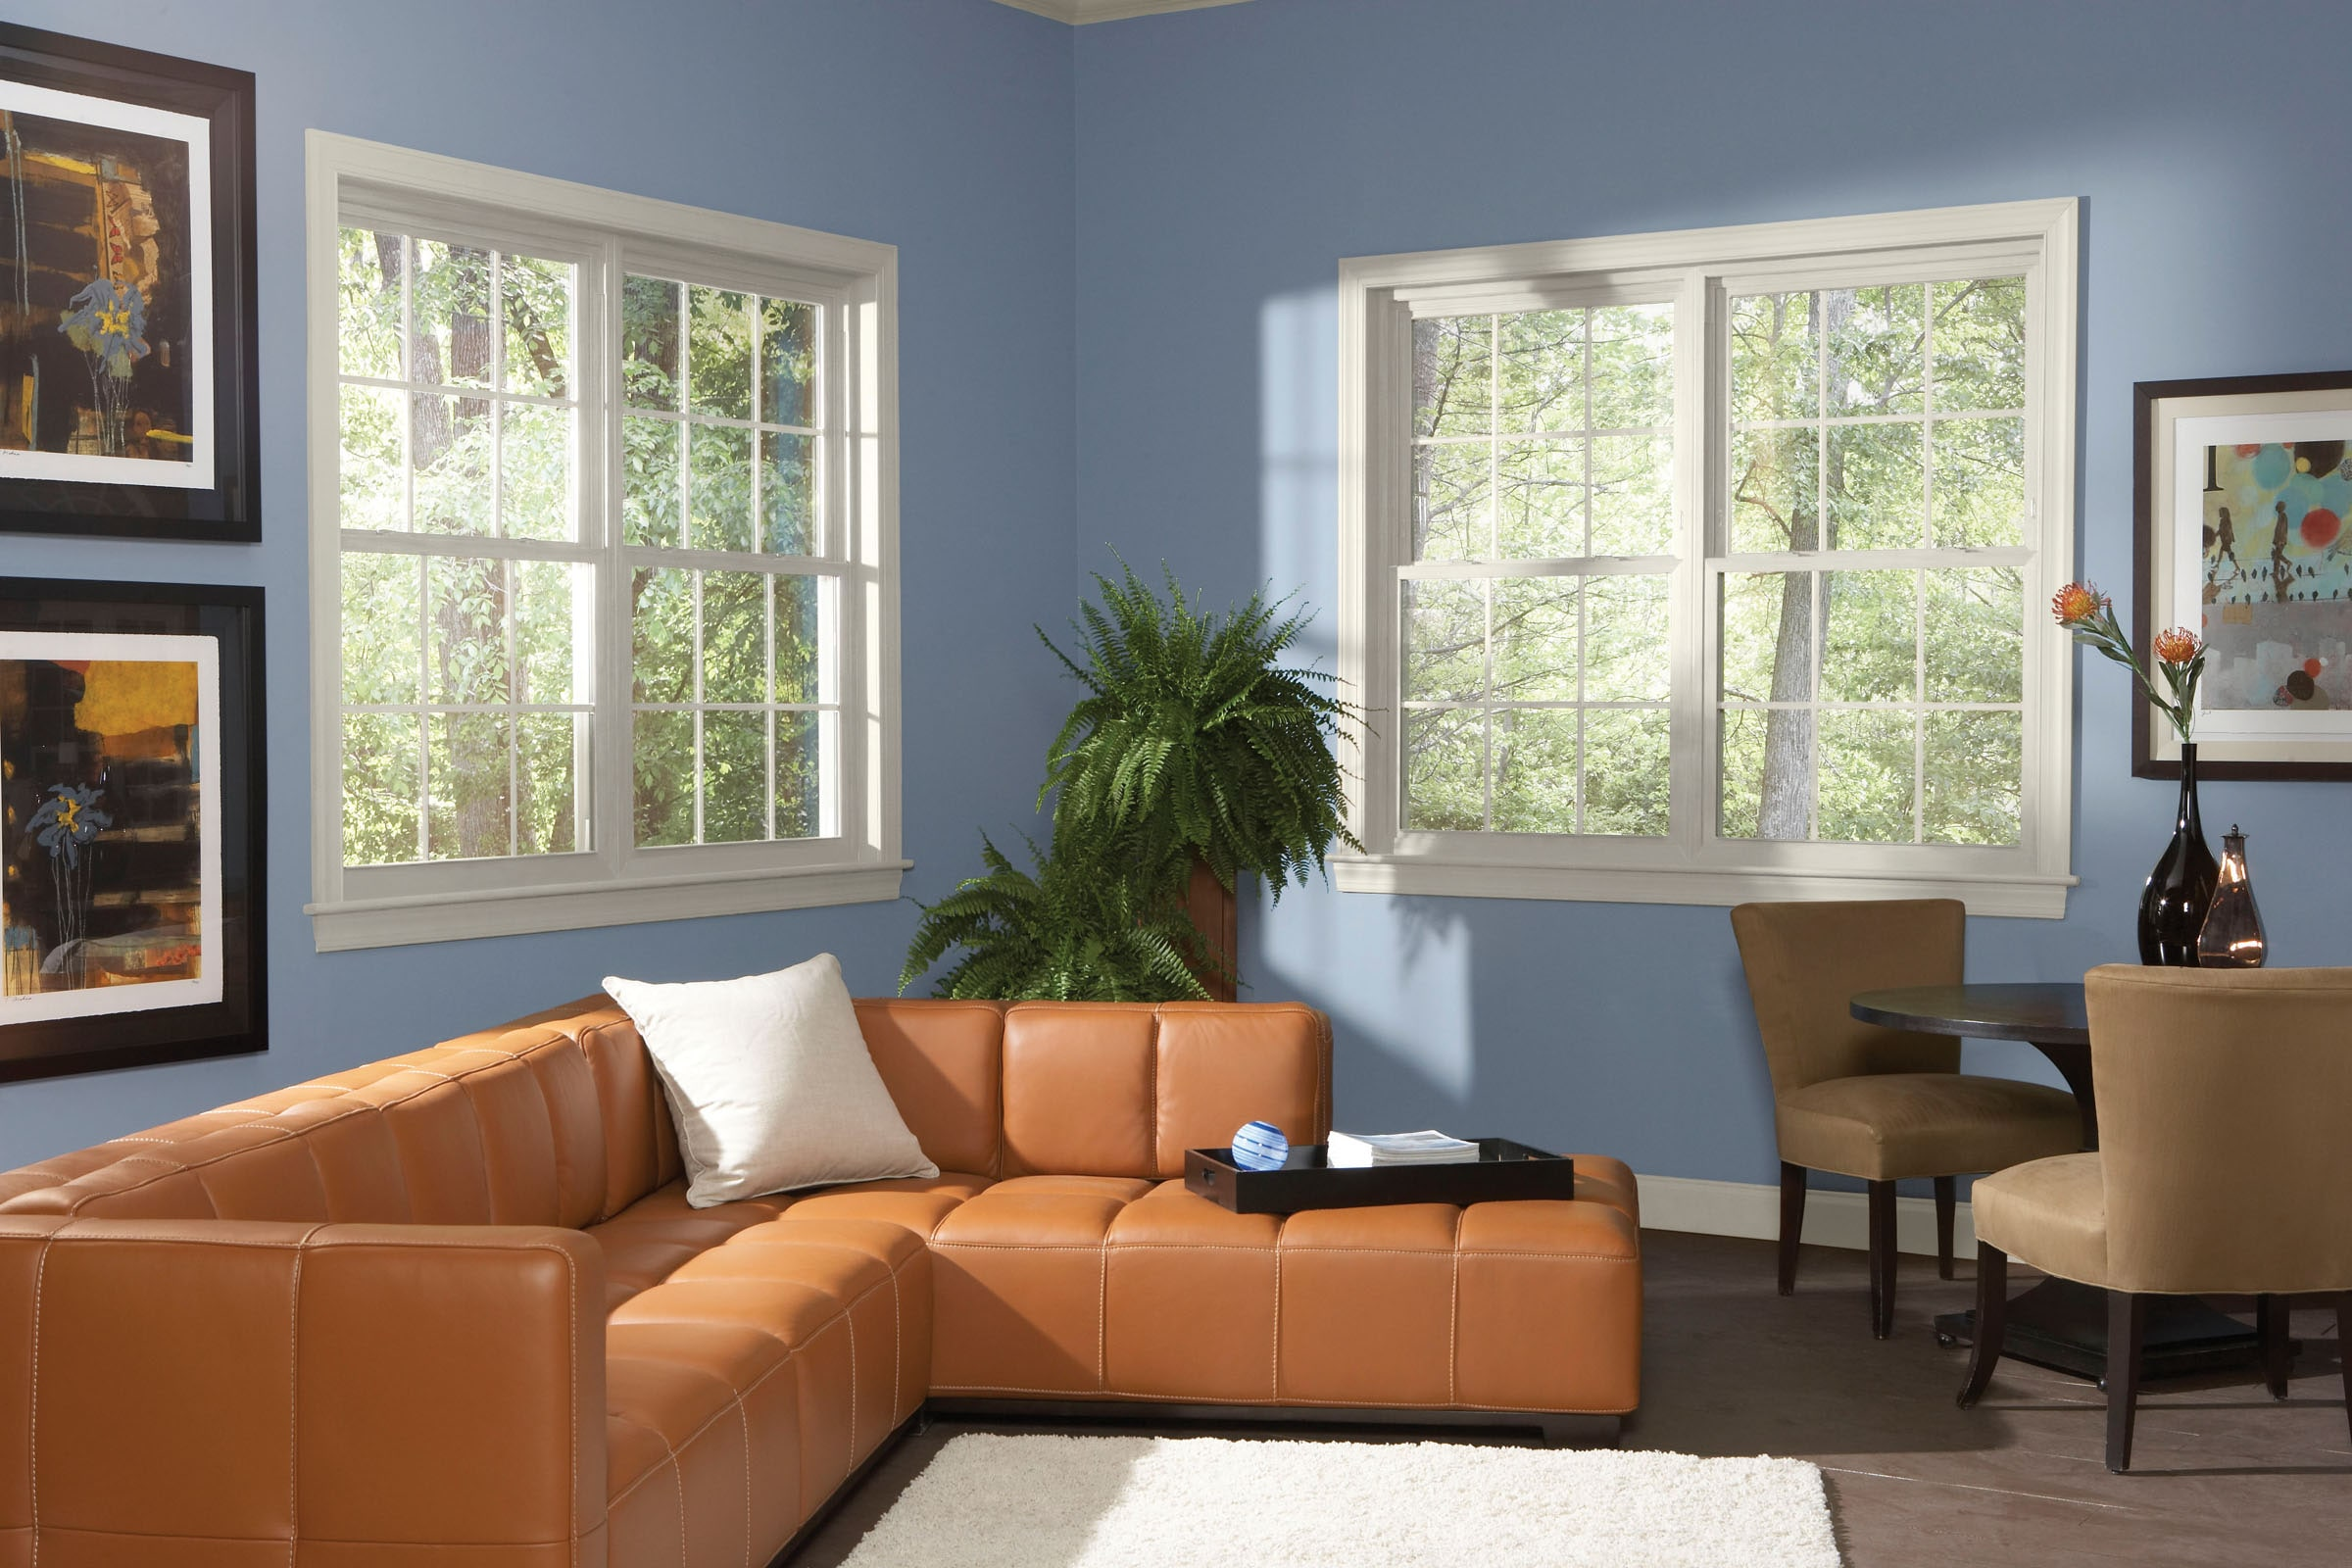 Living room features double hung windows.